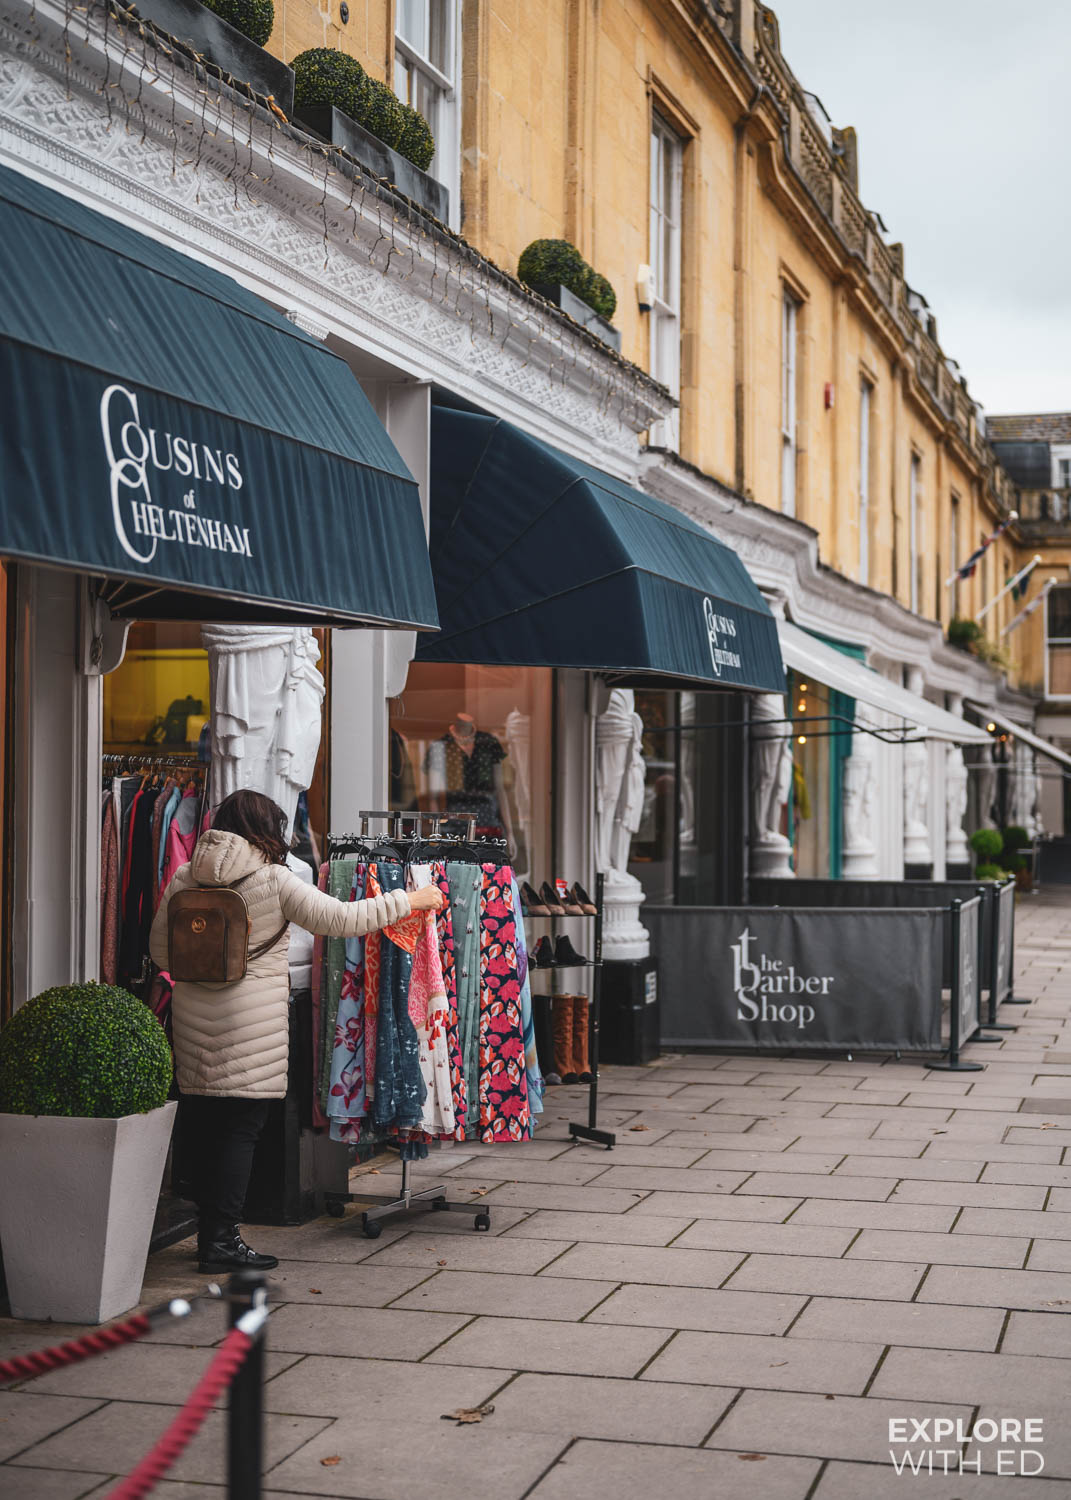 Cousins of Cheltenham and shopping area